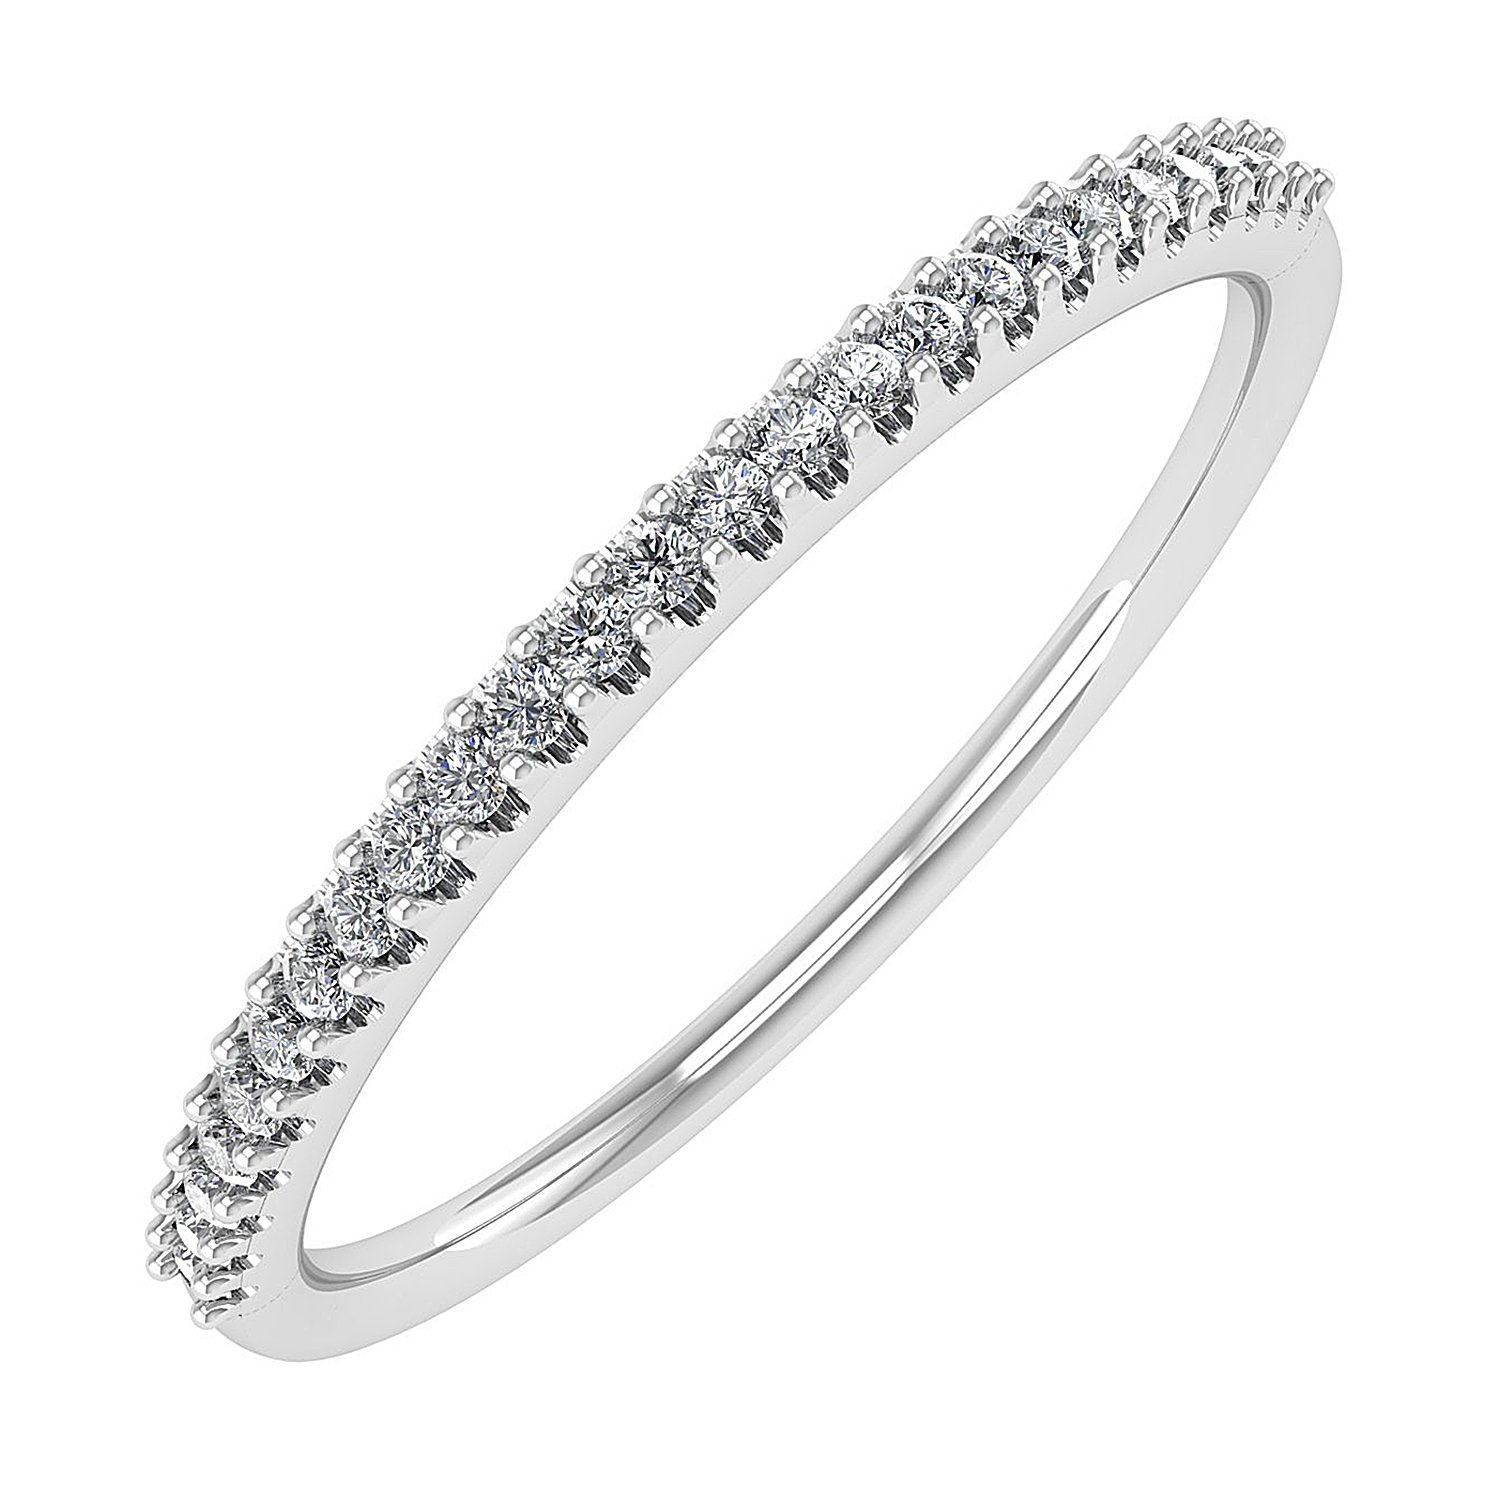 0.08 carat 10K White Gold Round Diamond Ladies Anniversary / Wedding stackable Band Ring - IGI Certified